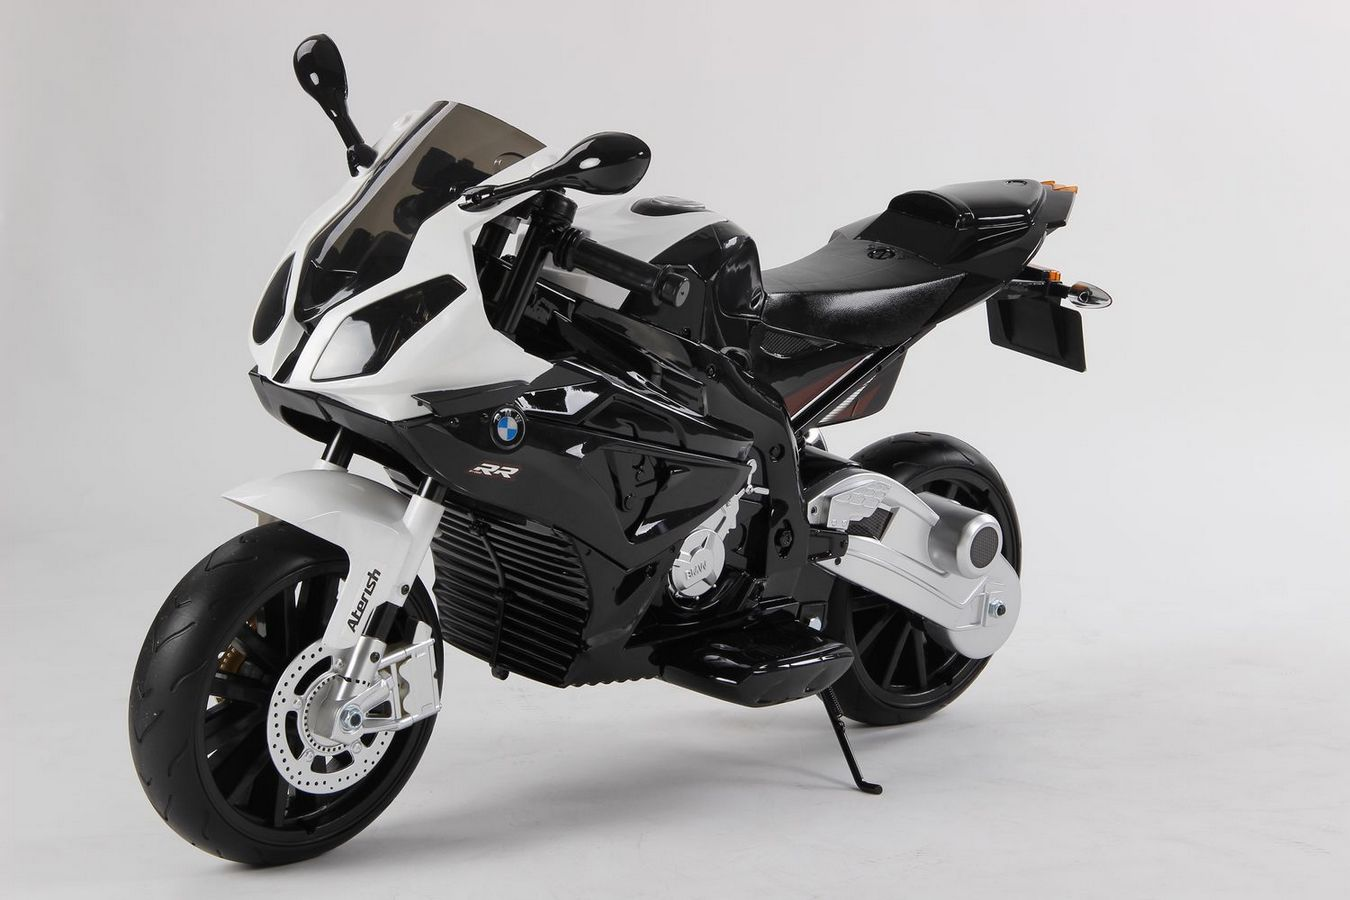 moto lectrique enfant 12v bmw s1000rr licence bmw kid 39 zzz n 39 quad 39 zzz. Black Bedroom Furniture Sets. Home Design Ideas